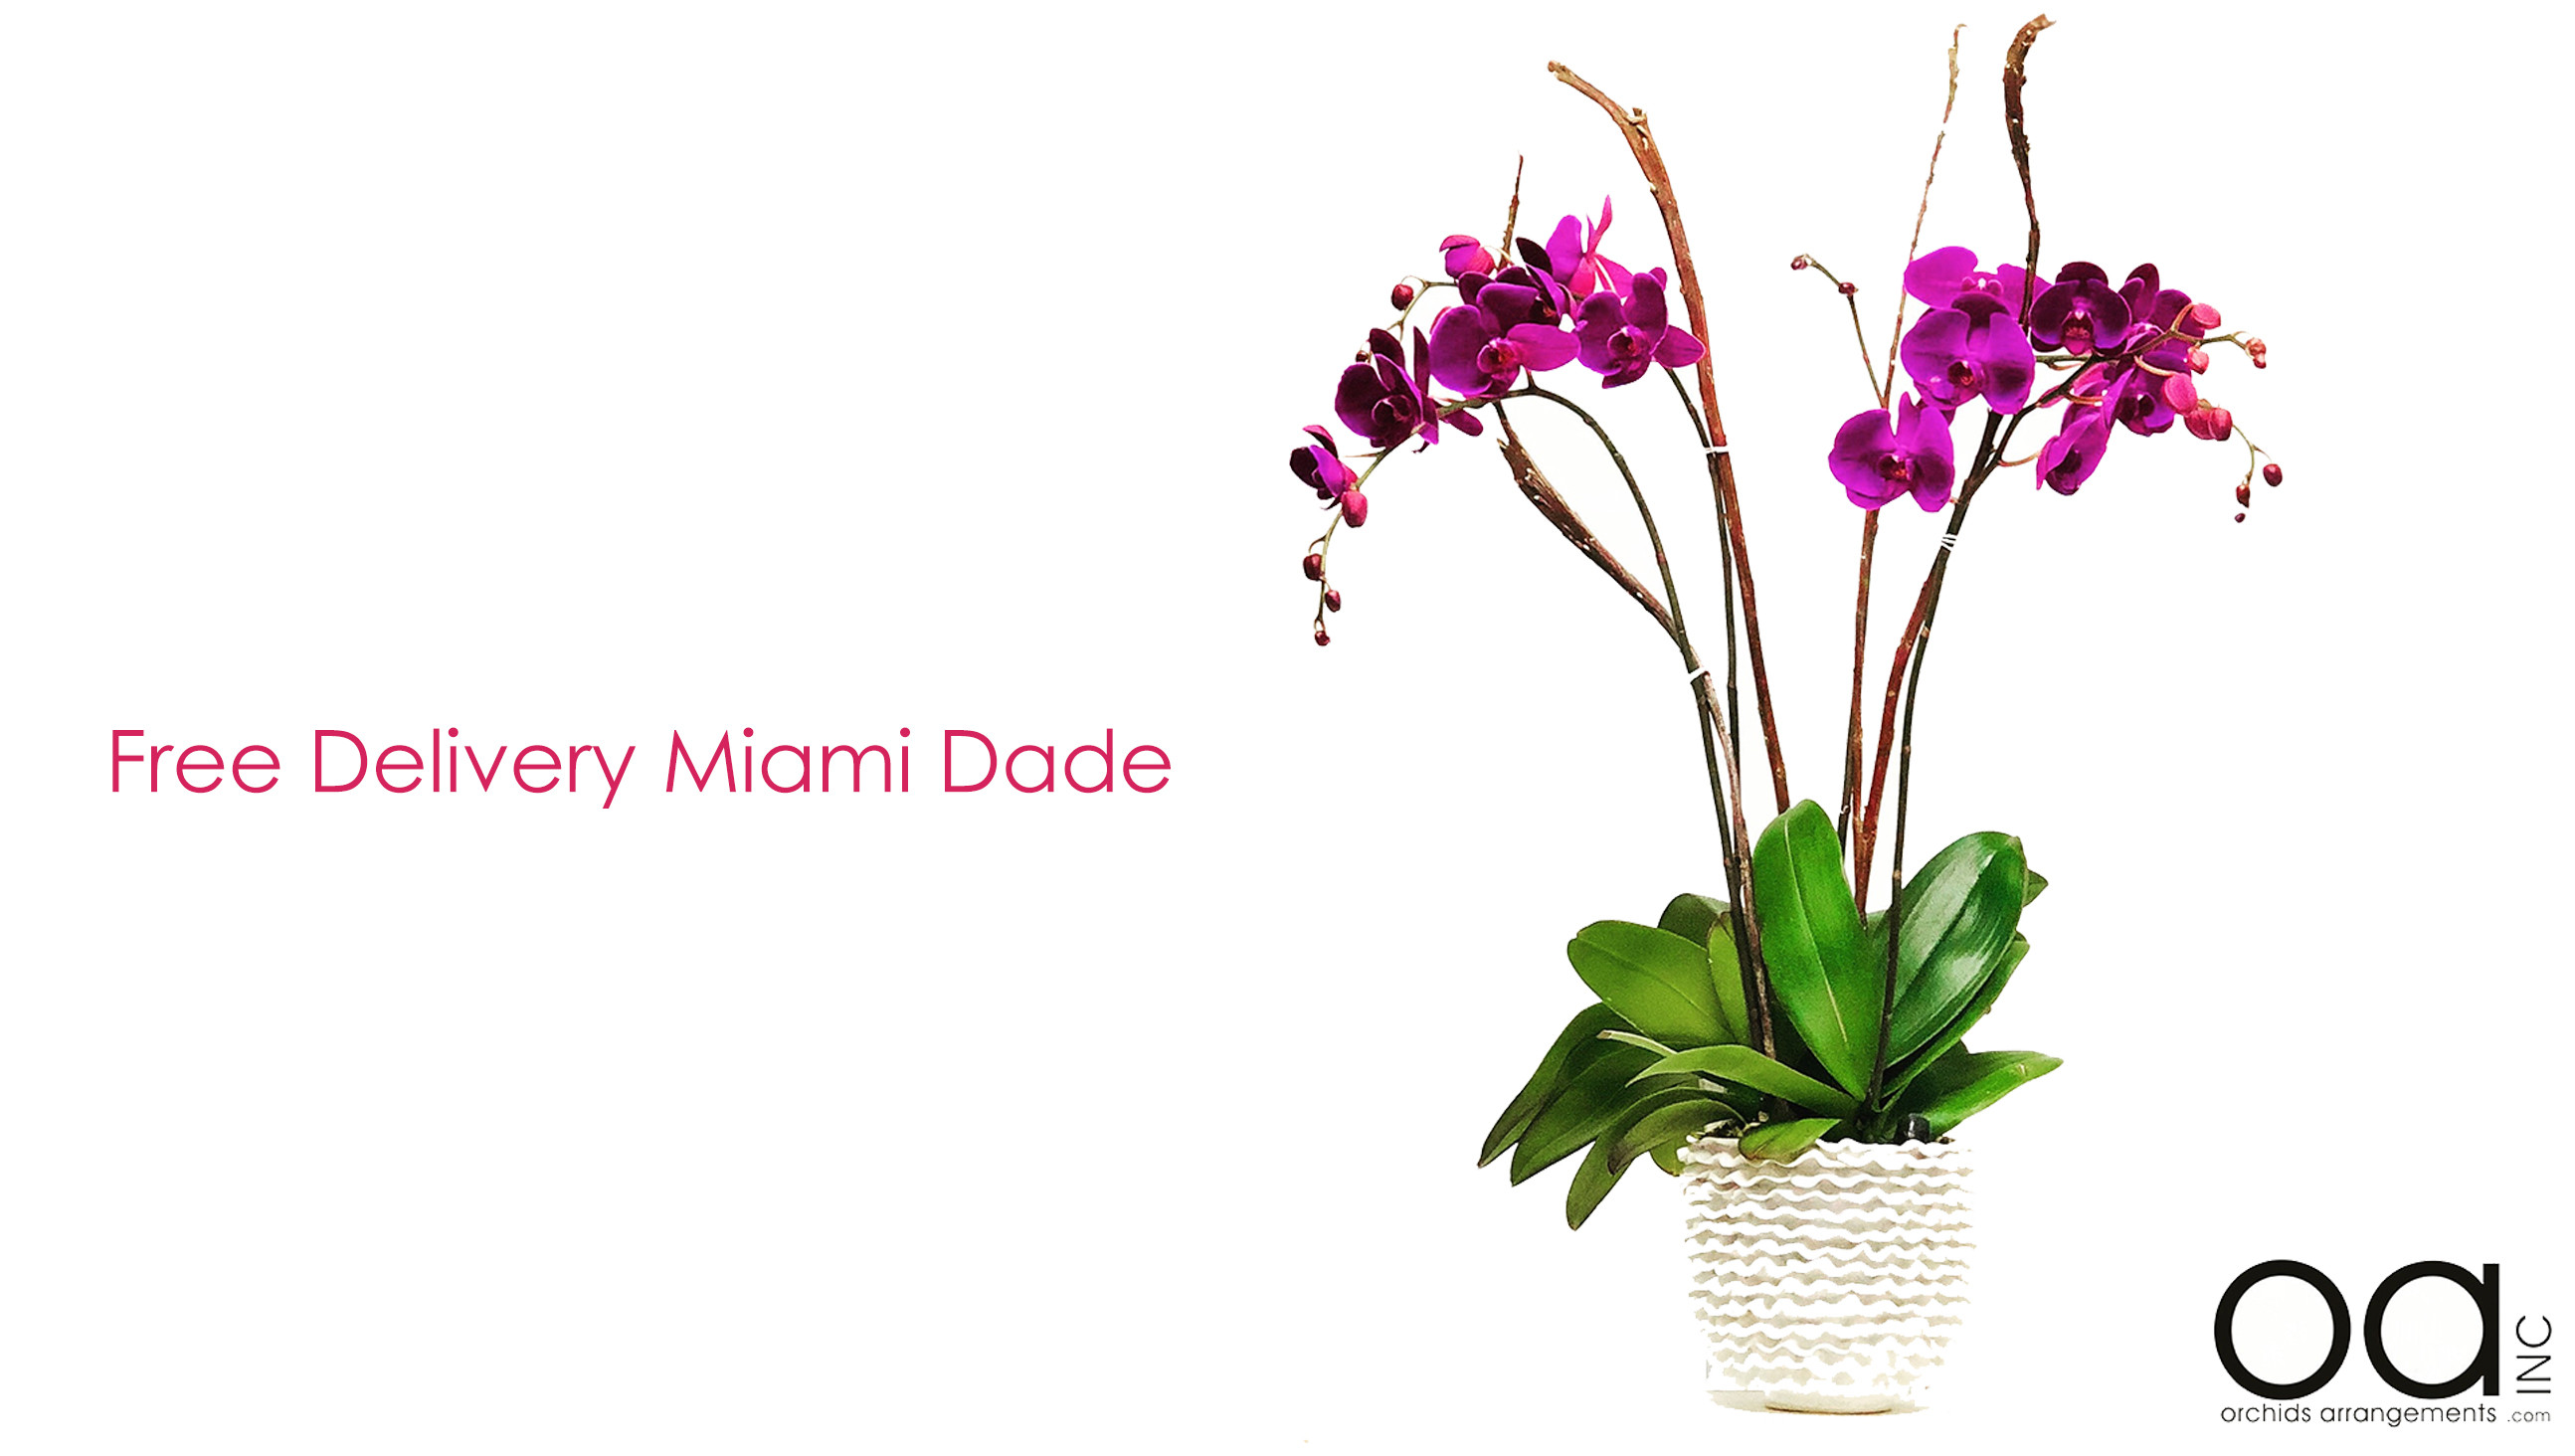 Miami Florist Orchids Arrangements Inc PreviousNextPlayStop